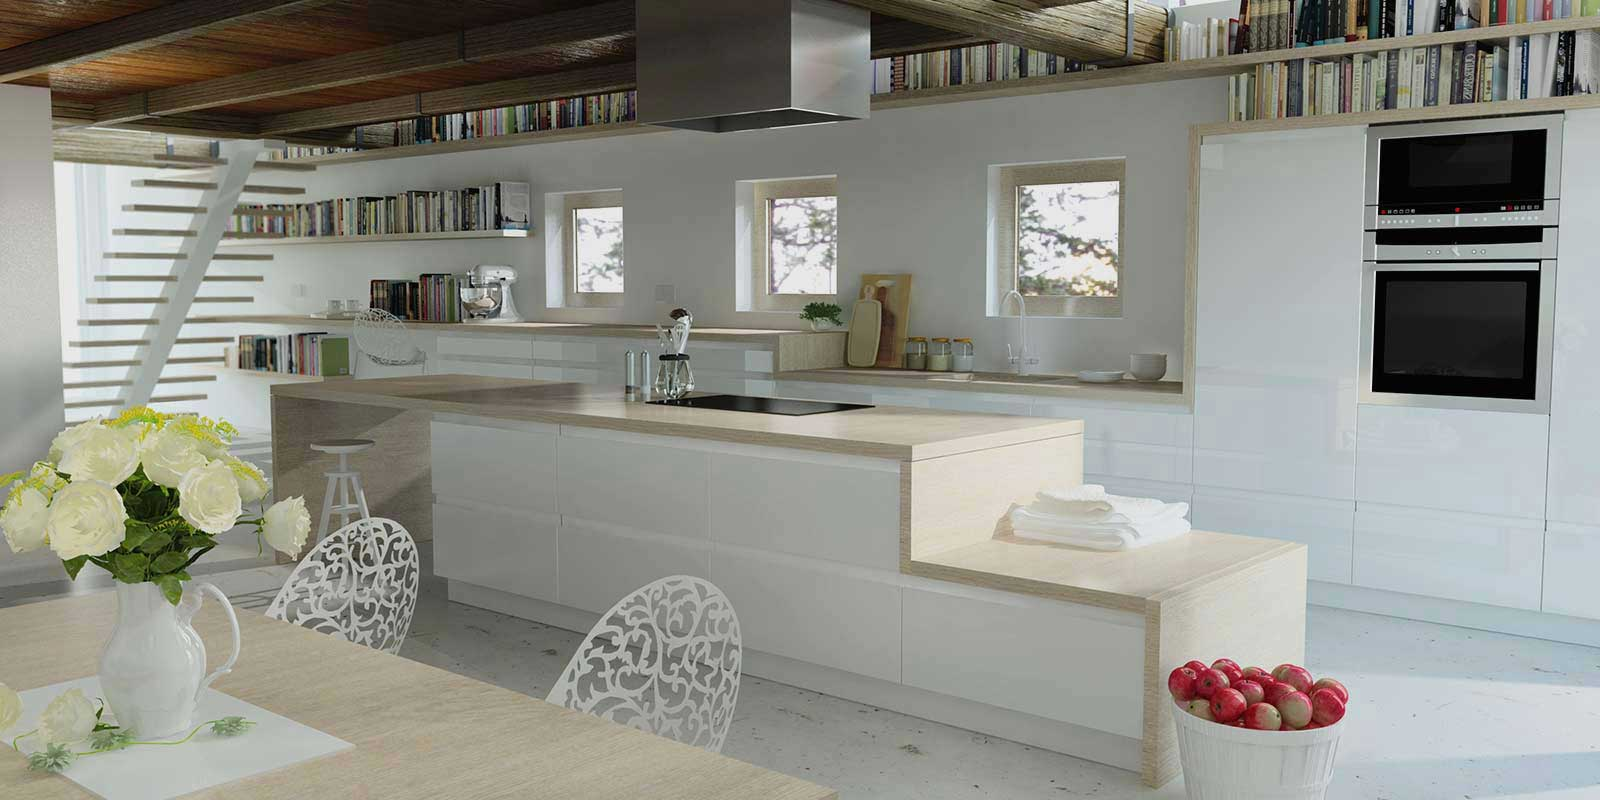 Woodbrook Designs of Monmouth, Hereford and Gloucestershire.  Kitchens, bedrooms and bathrooms